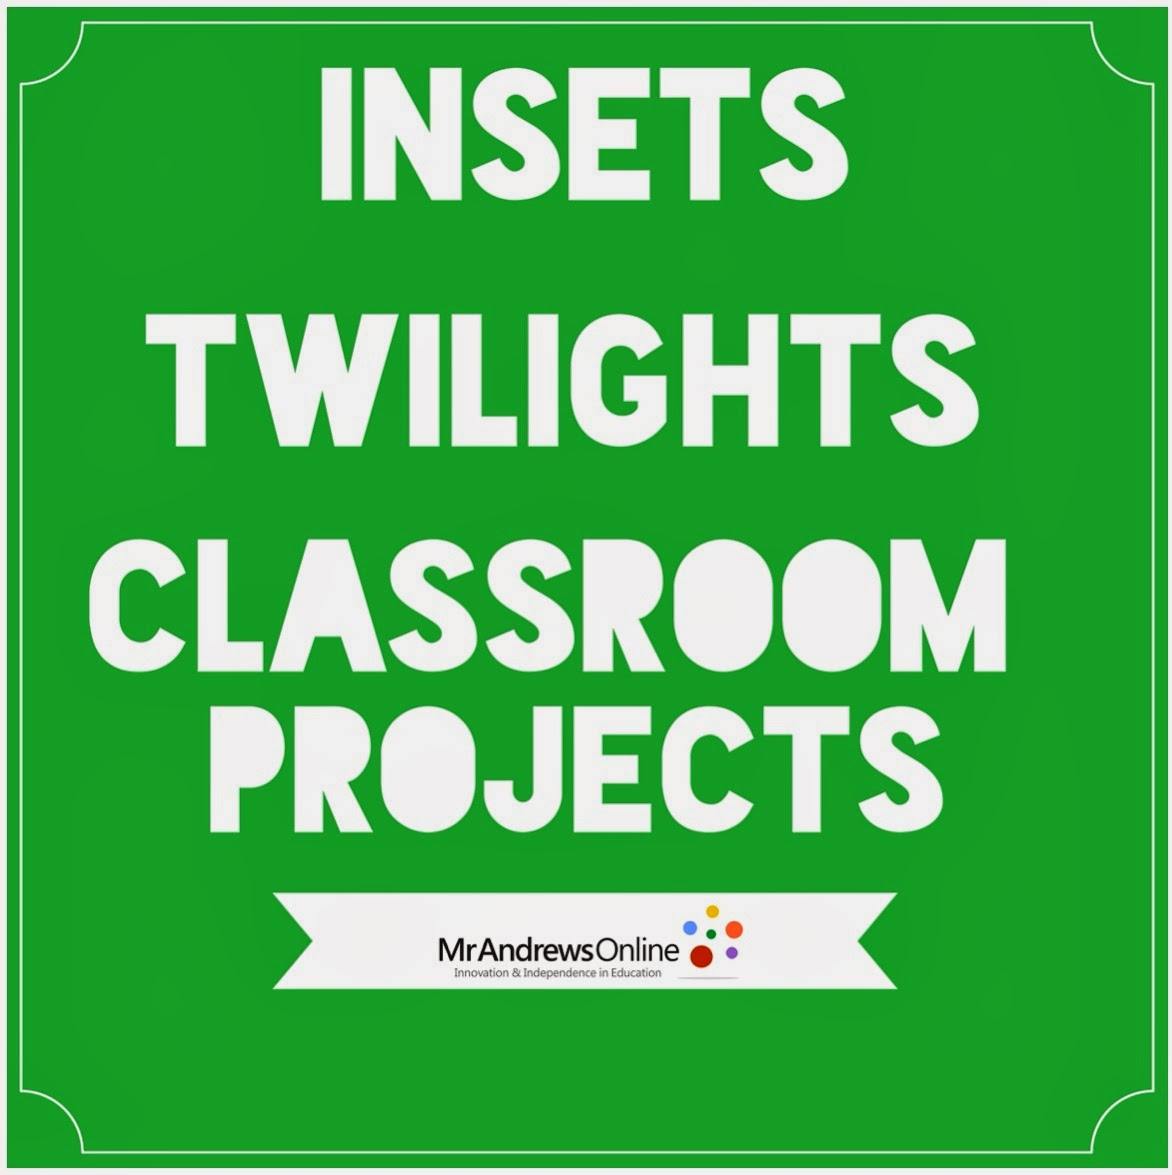 NATIONWIDE INSETS, TWILIGHTS & CLASSROOM PROJECTS